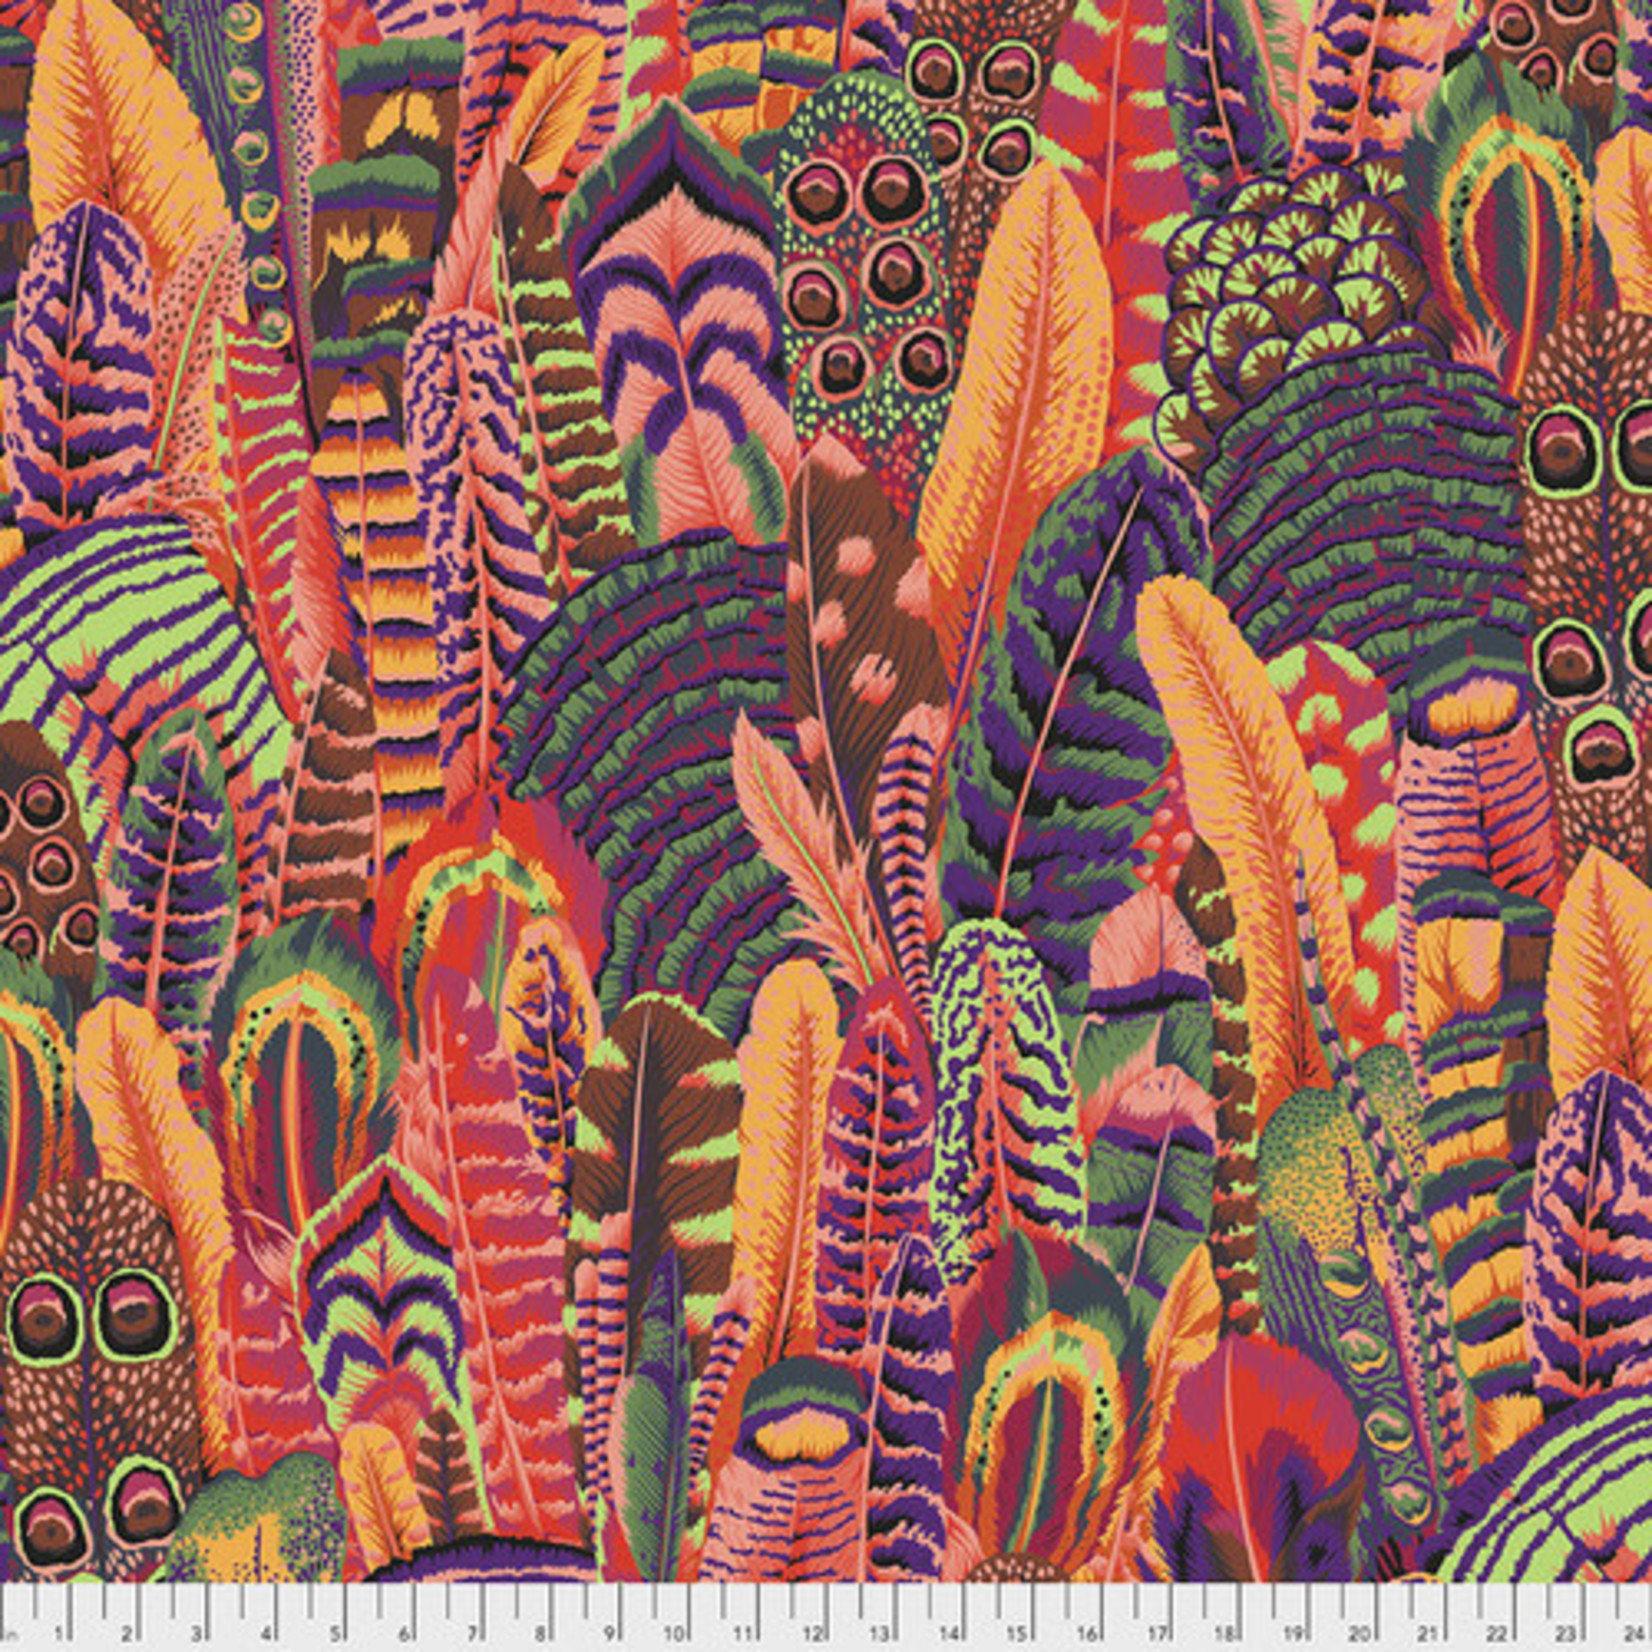 Kaffe Fassett KF Collective - Feathers, Summer (PWPJ055.SUMMER) $0.18 per cm or $18/m